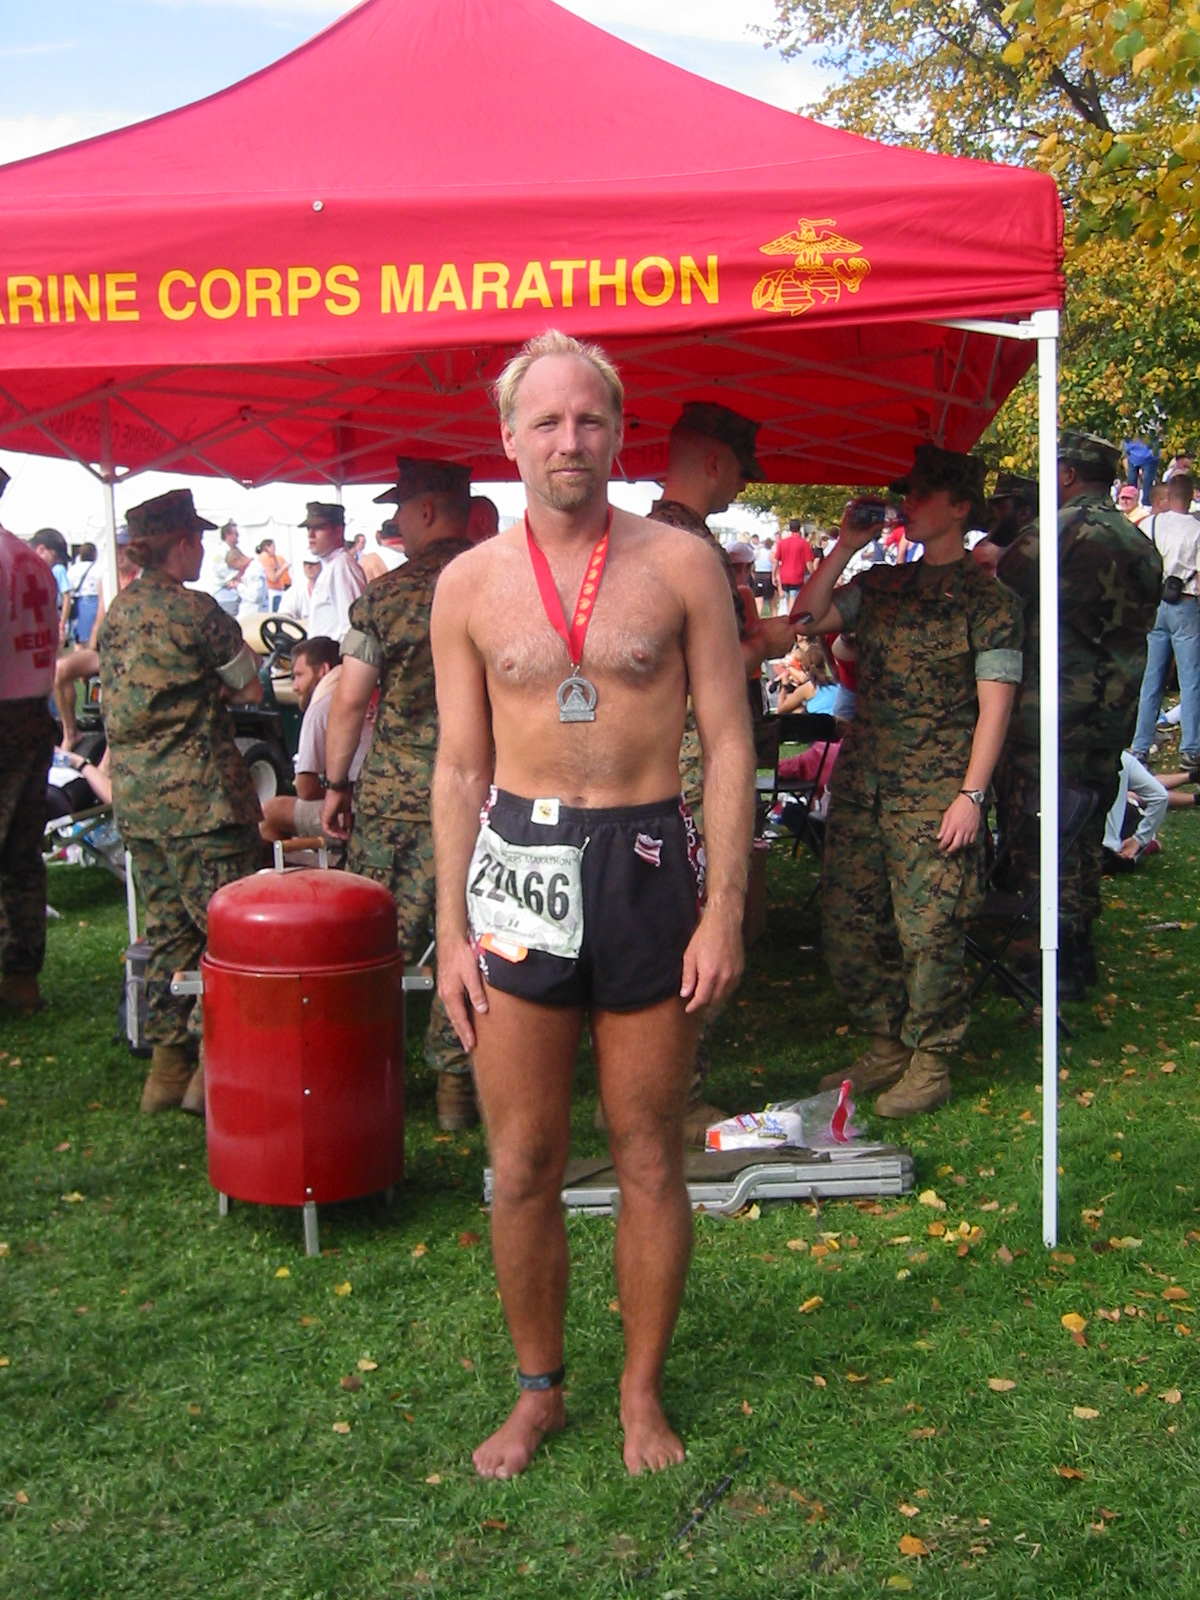 Marine Corp Marathon (2004 October 31)